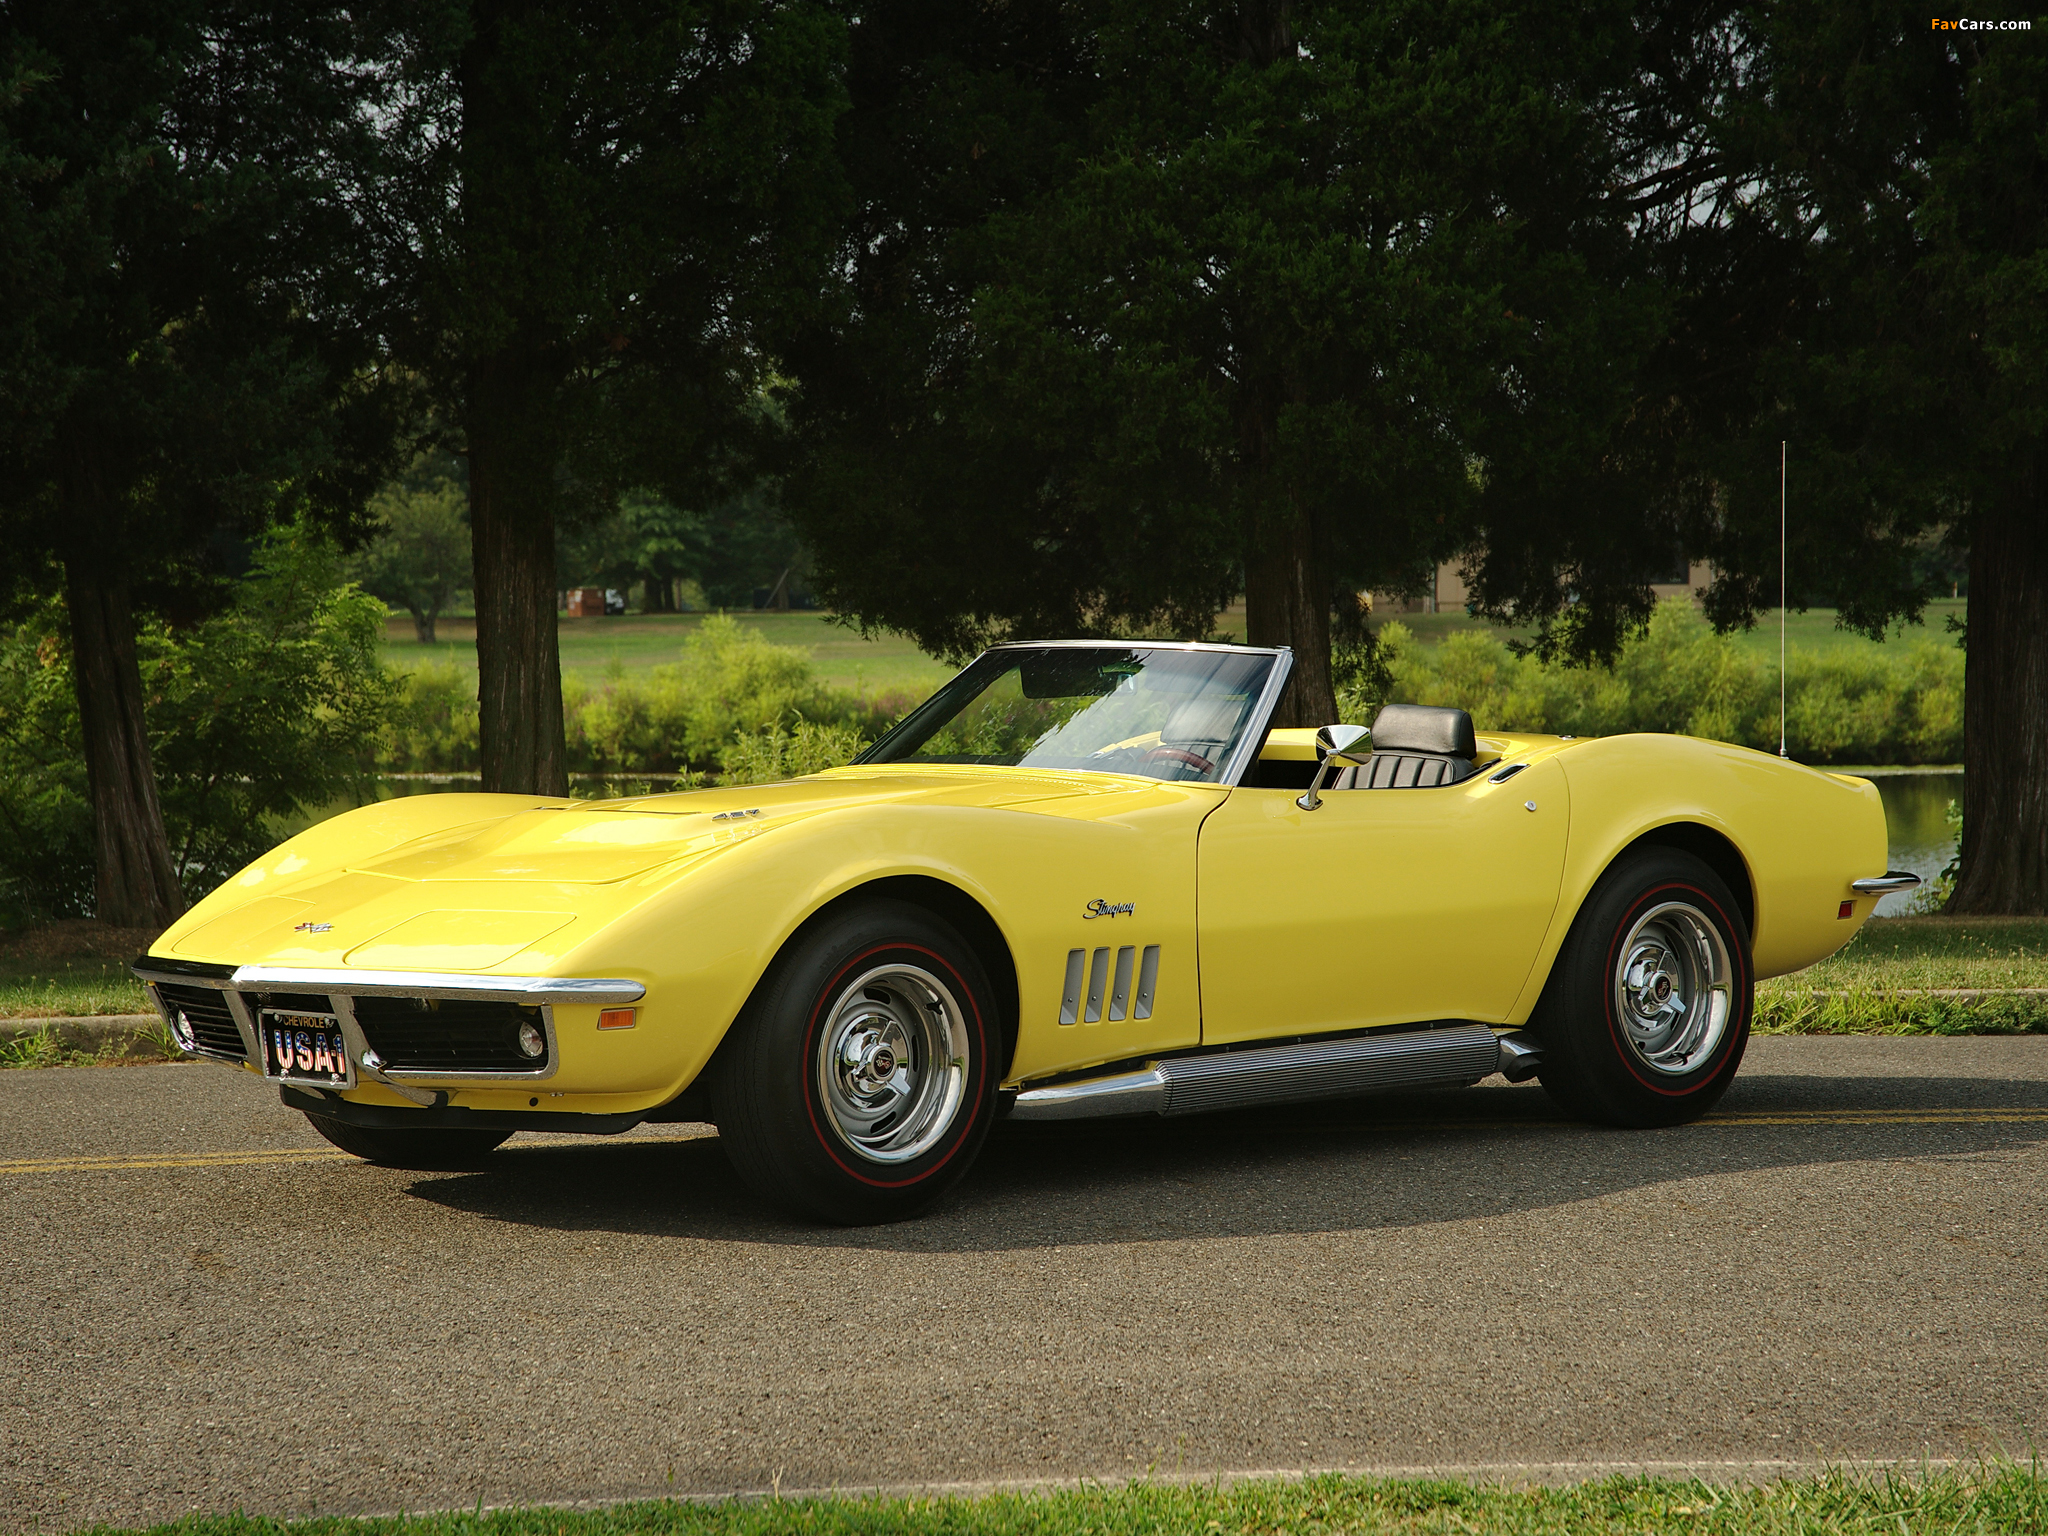 1969 Corvette Stingray >> Pictures of Corvette Stingray Convertible (C3) 1969 (2048x1536)